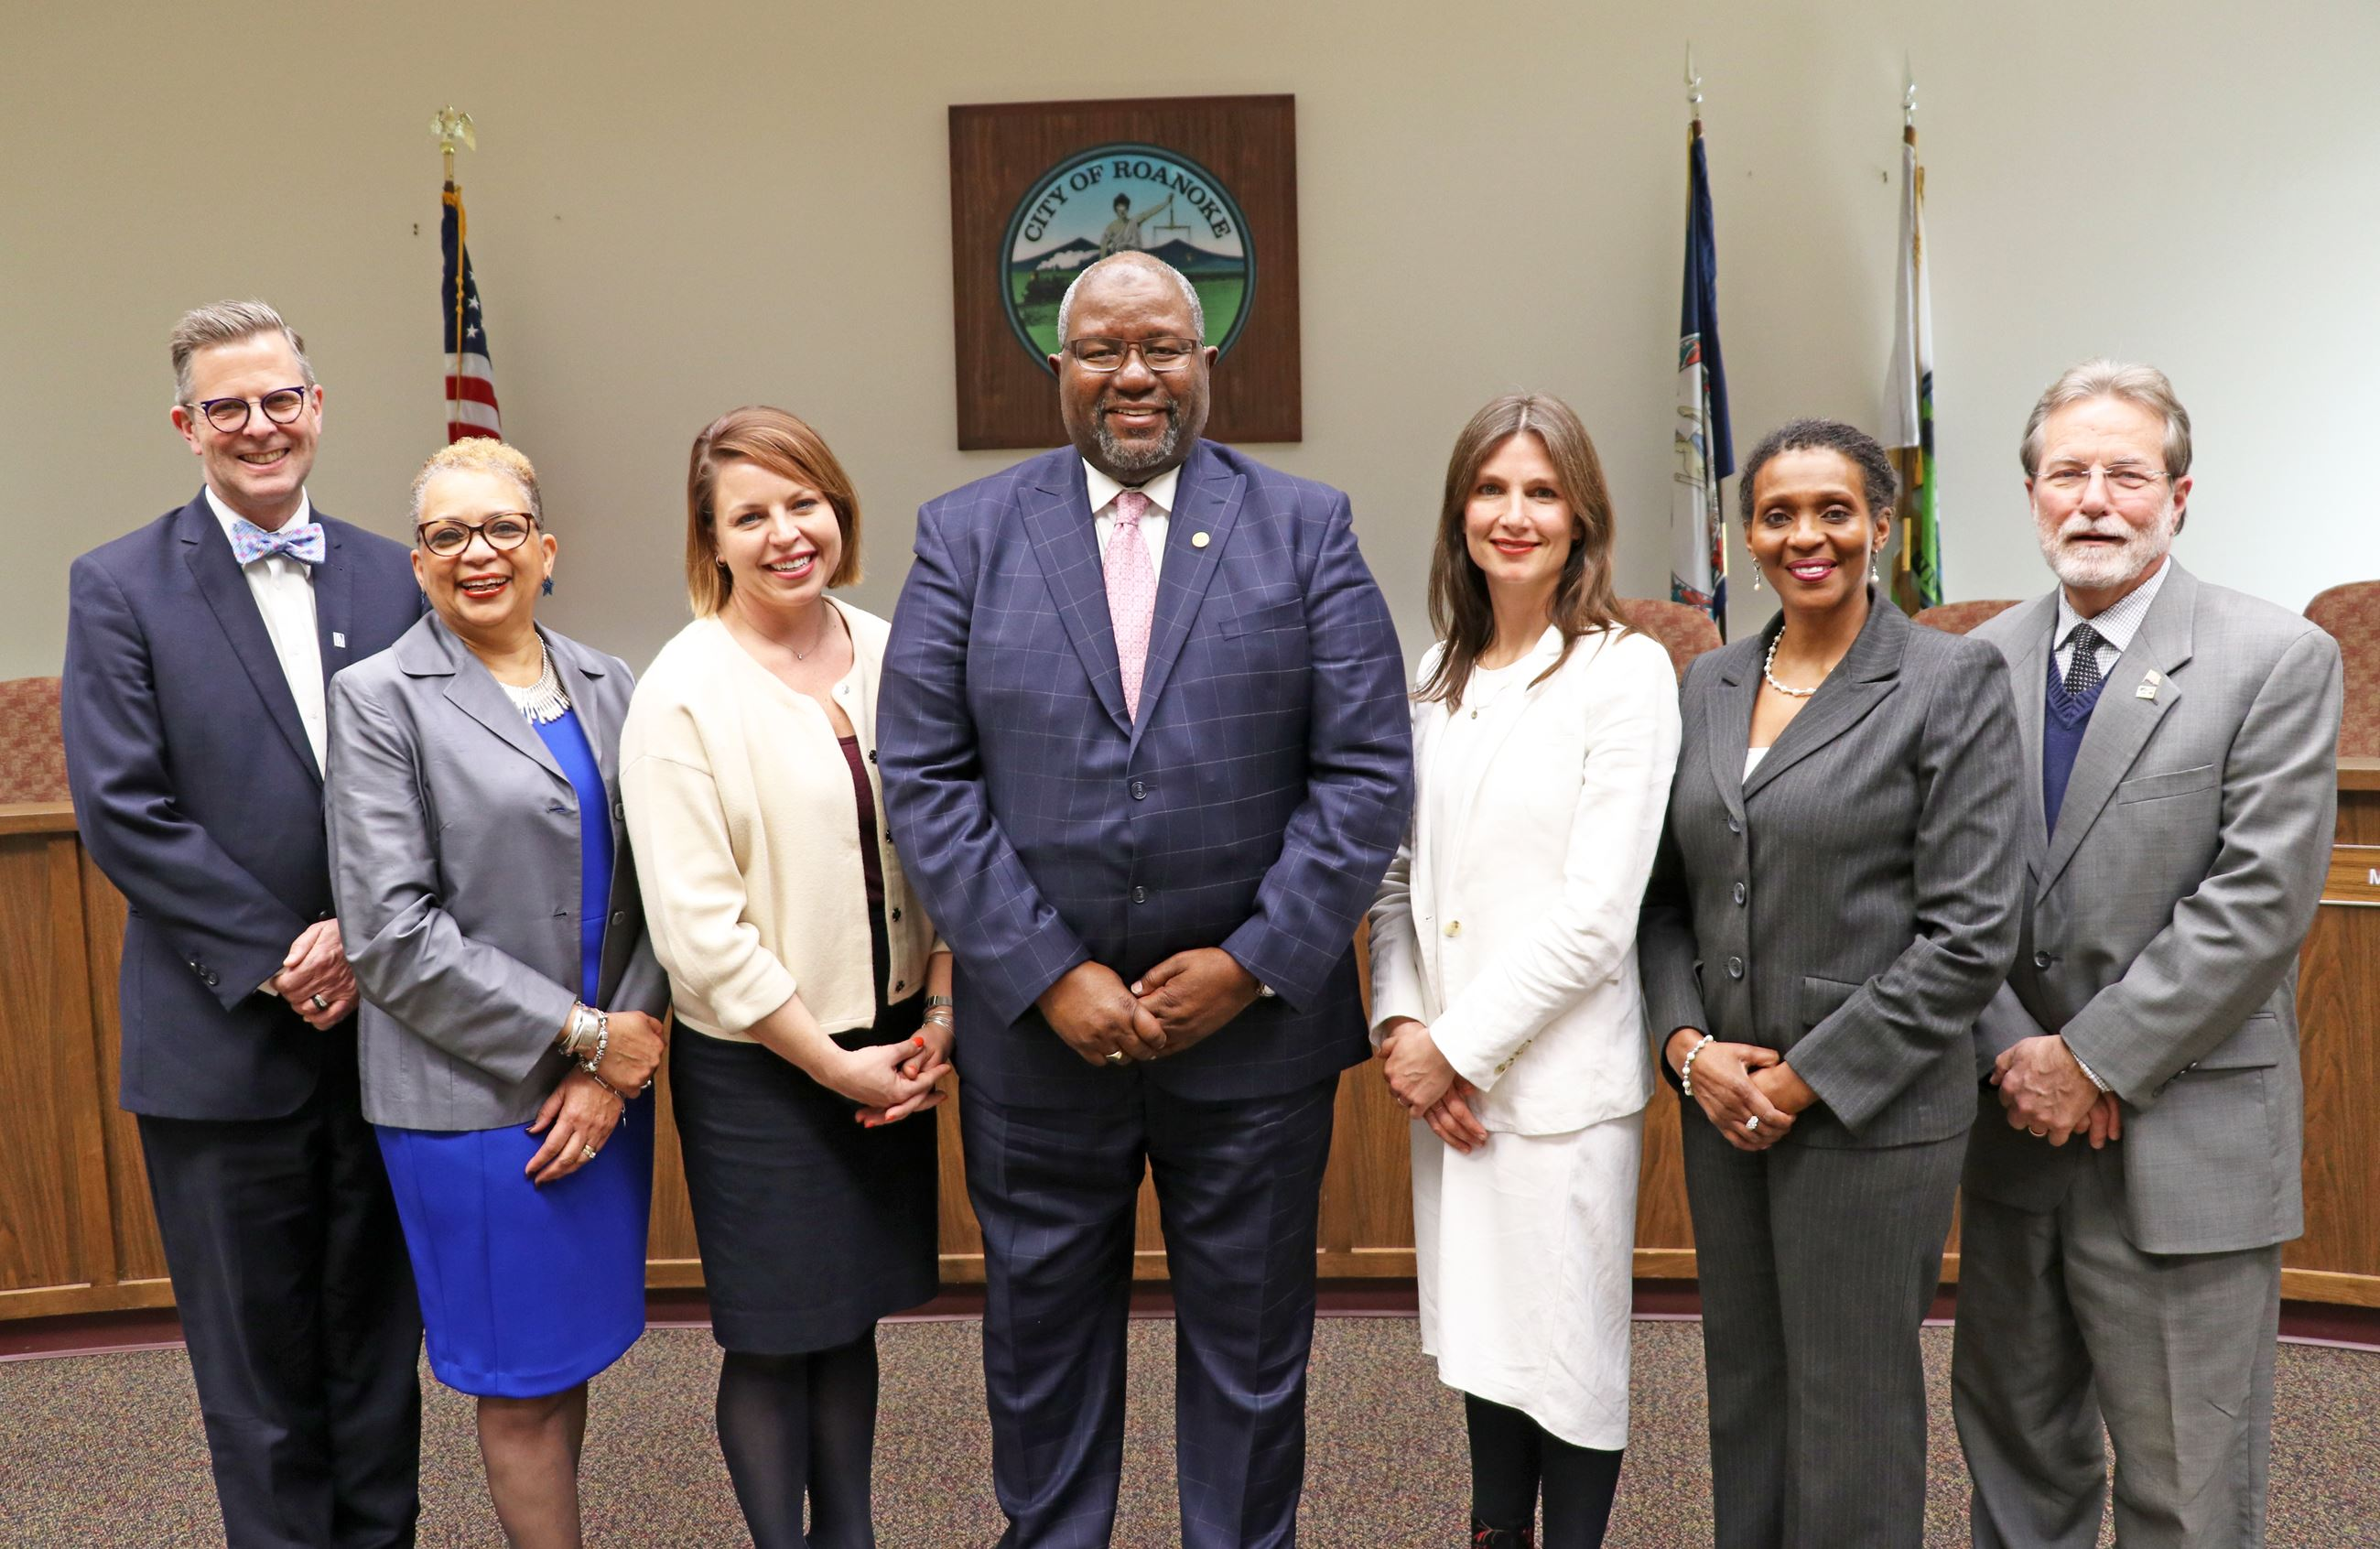 Group photo of Roanoke City Councilmembers